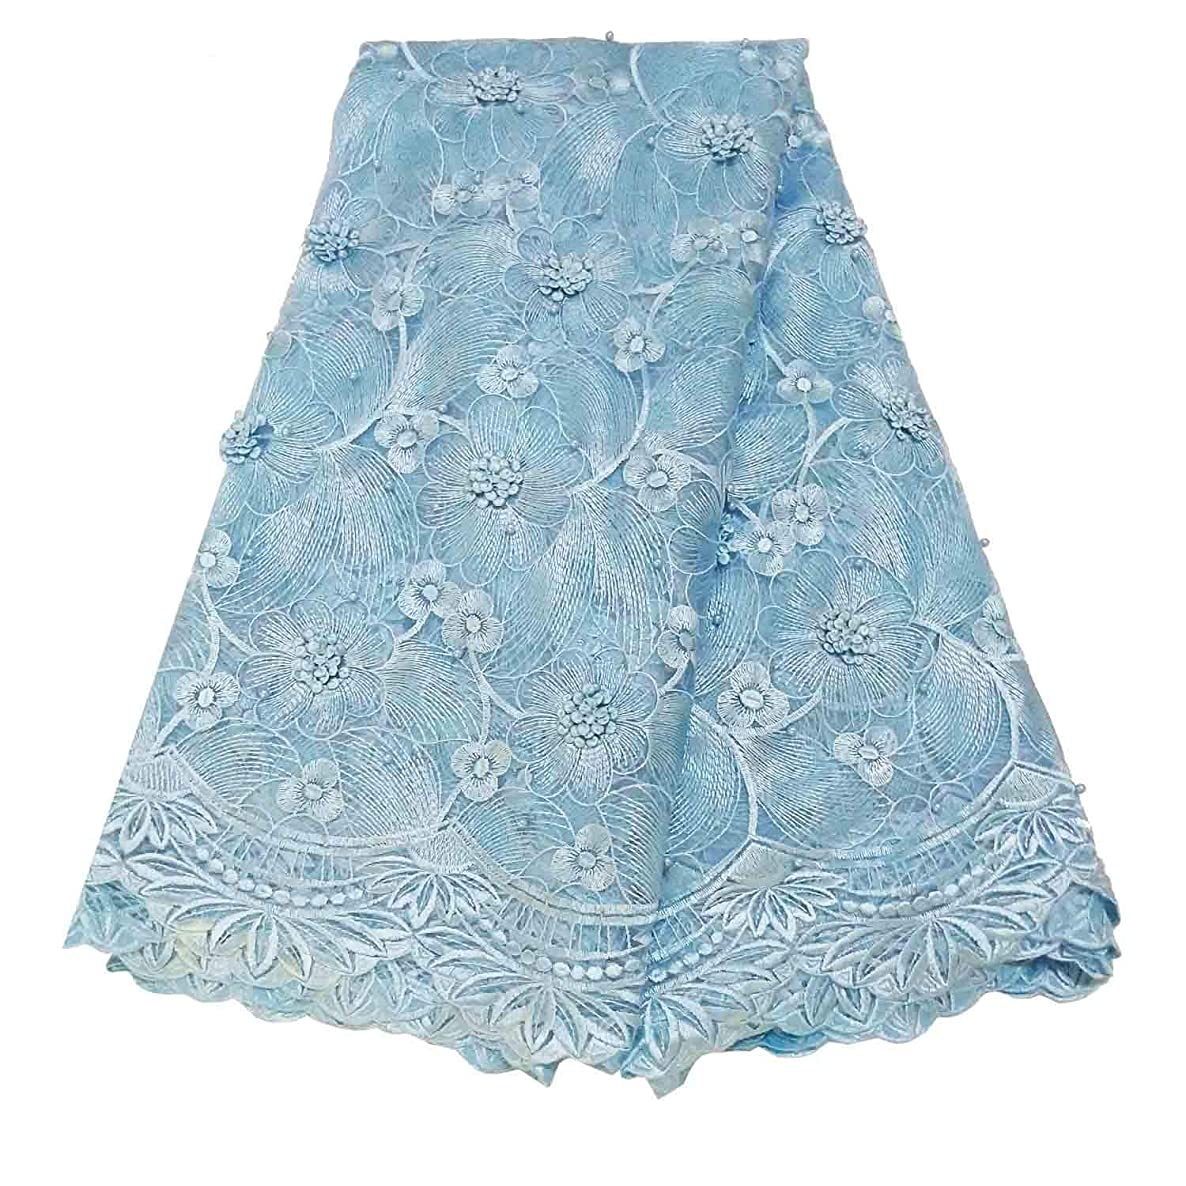 BlueSky 5 Yards African Nigerian French Lace Net Fabric Embroidered Beading and Rhinestones Guipure Cord Lace for Wedding Part A009 (Light Blue)